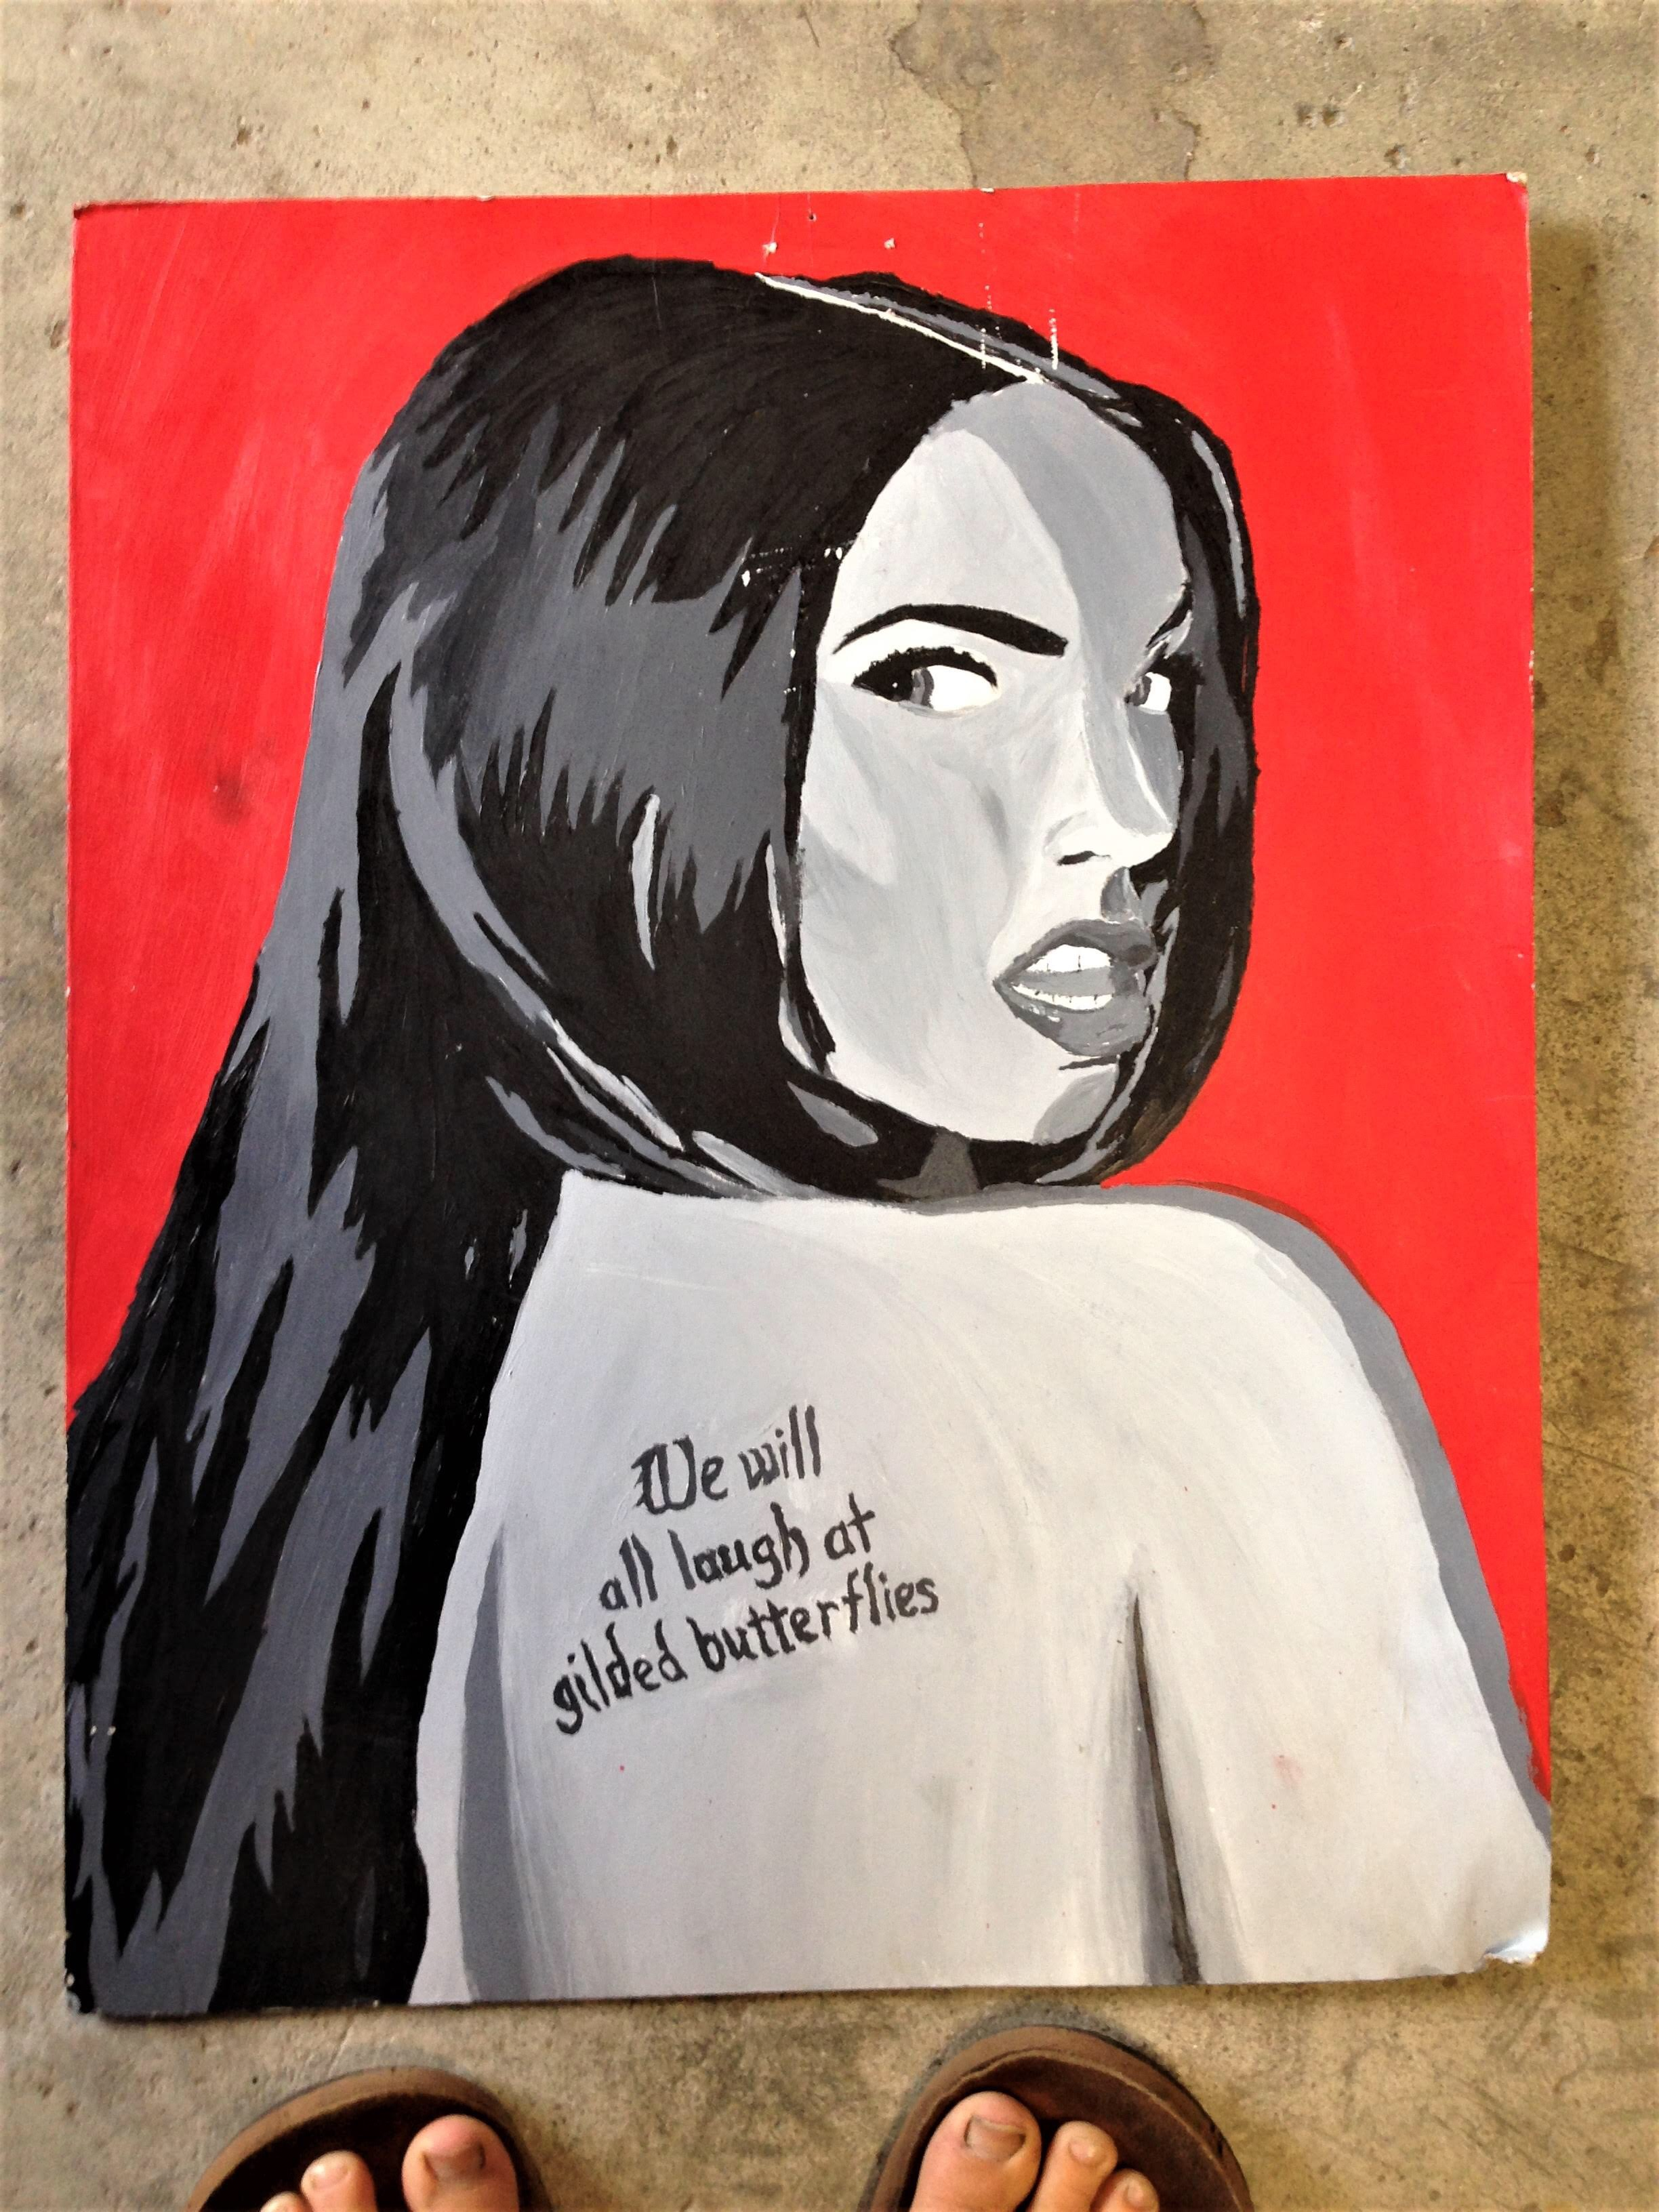 Acrylic on canvas painting of Megan Fox